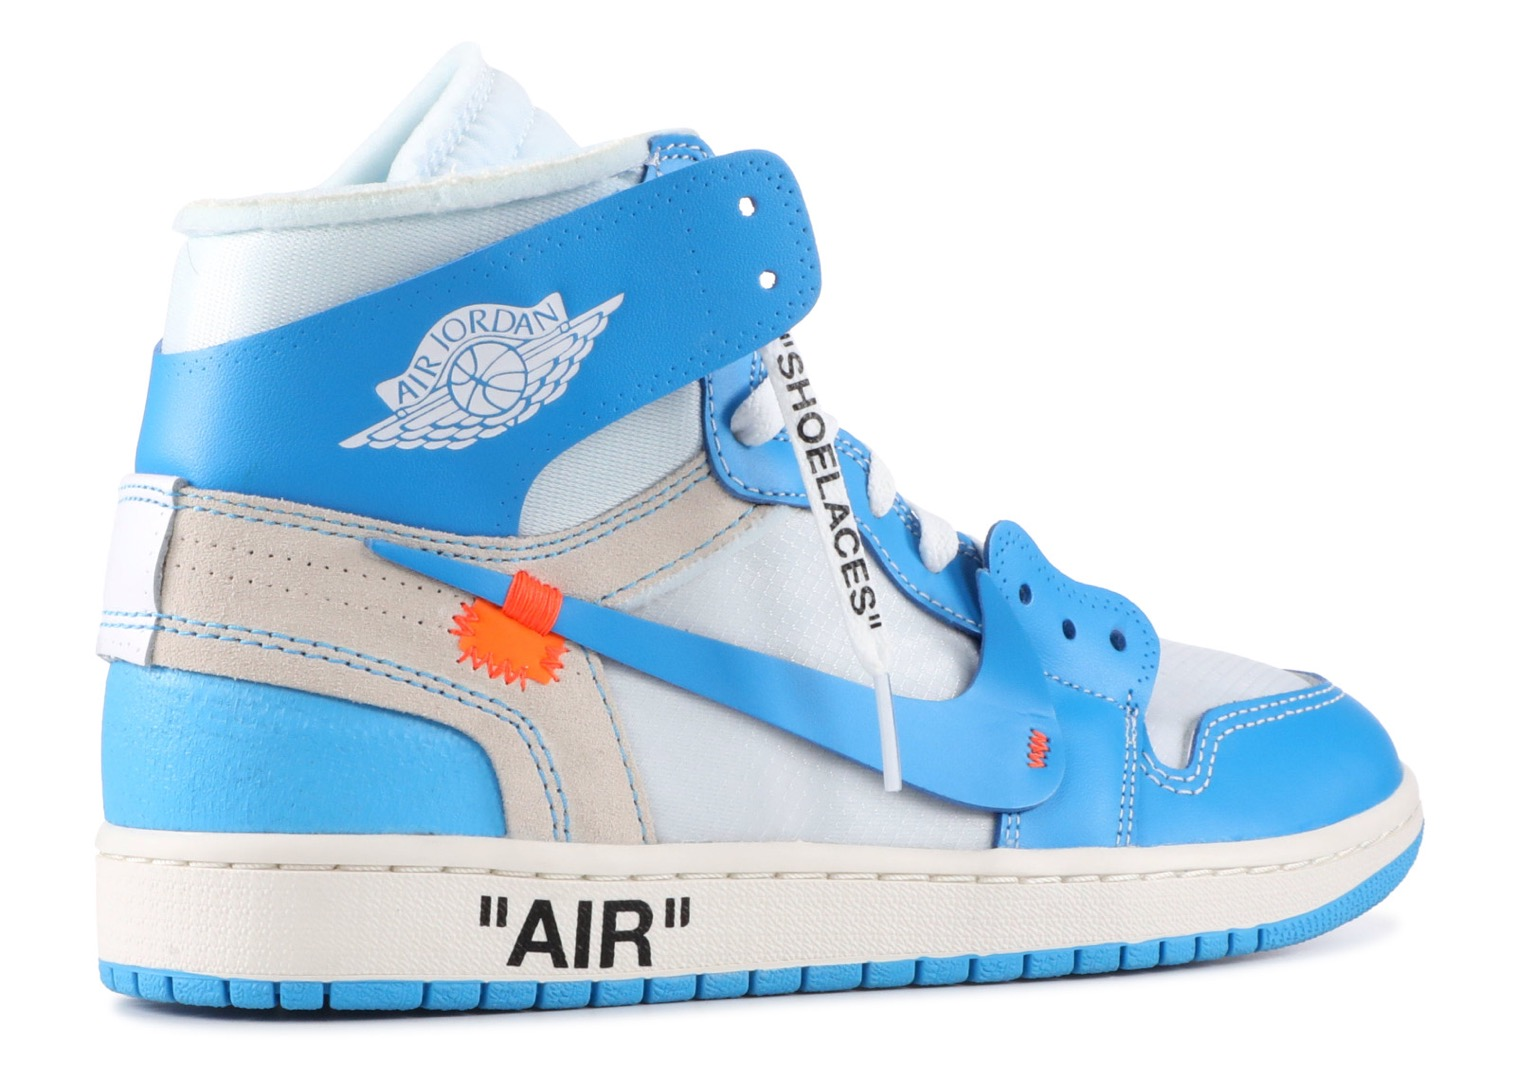 Air Jordan OFF WHITE NRG OFF - 2